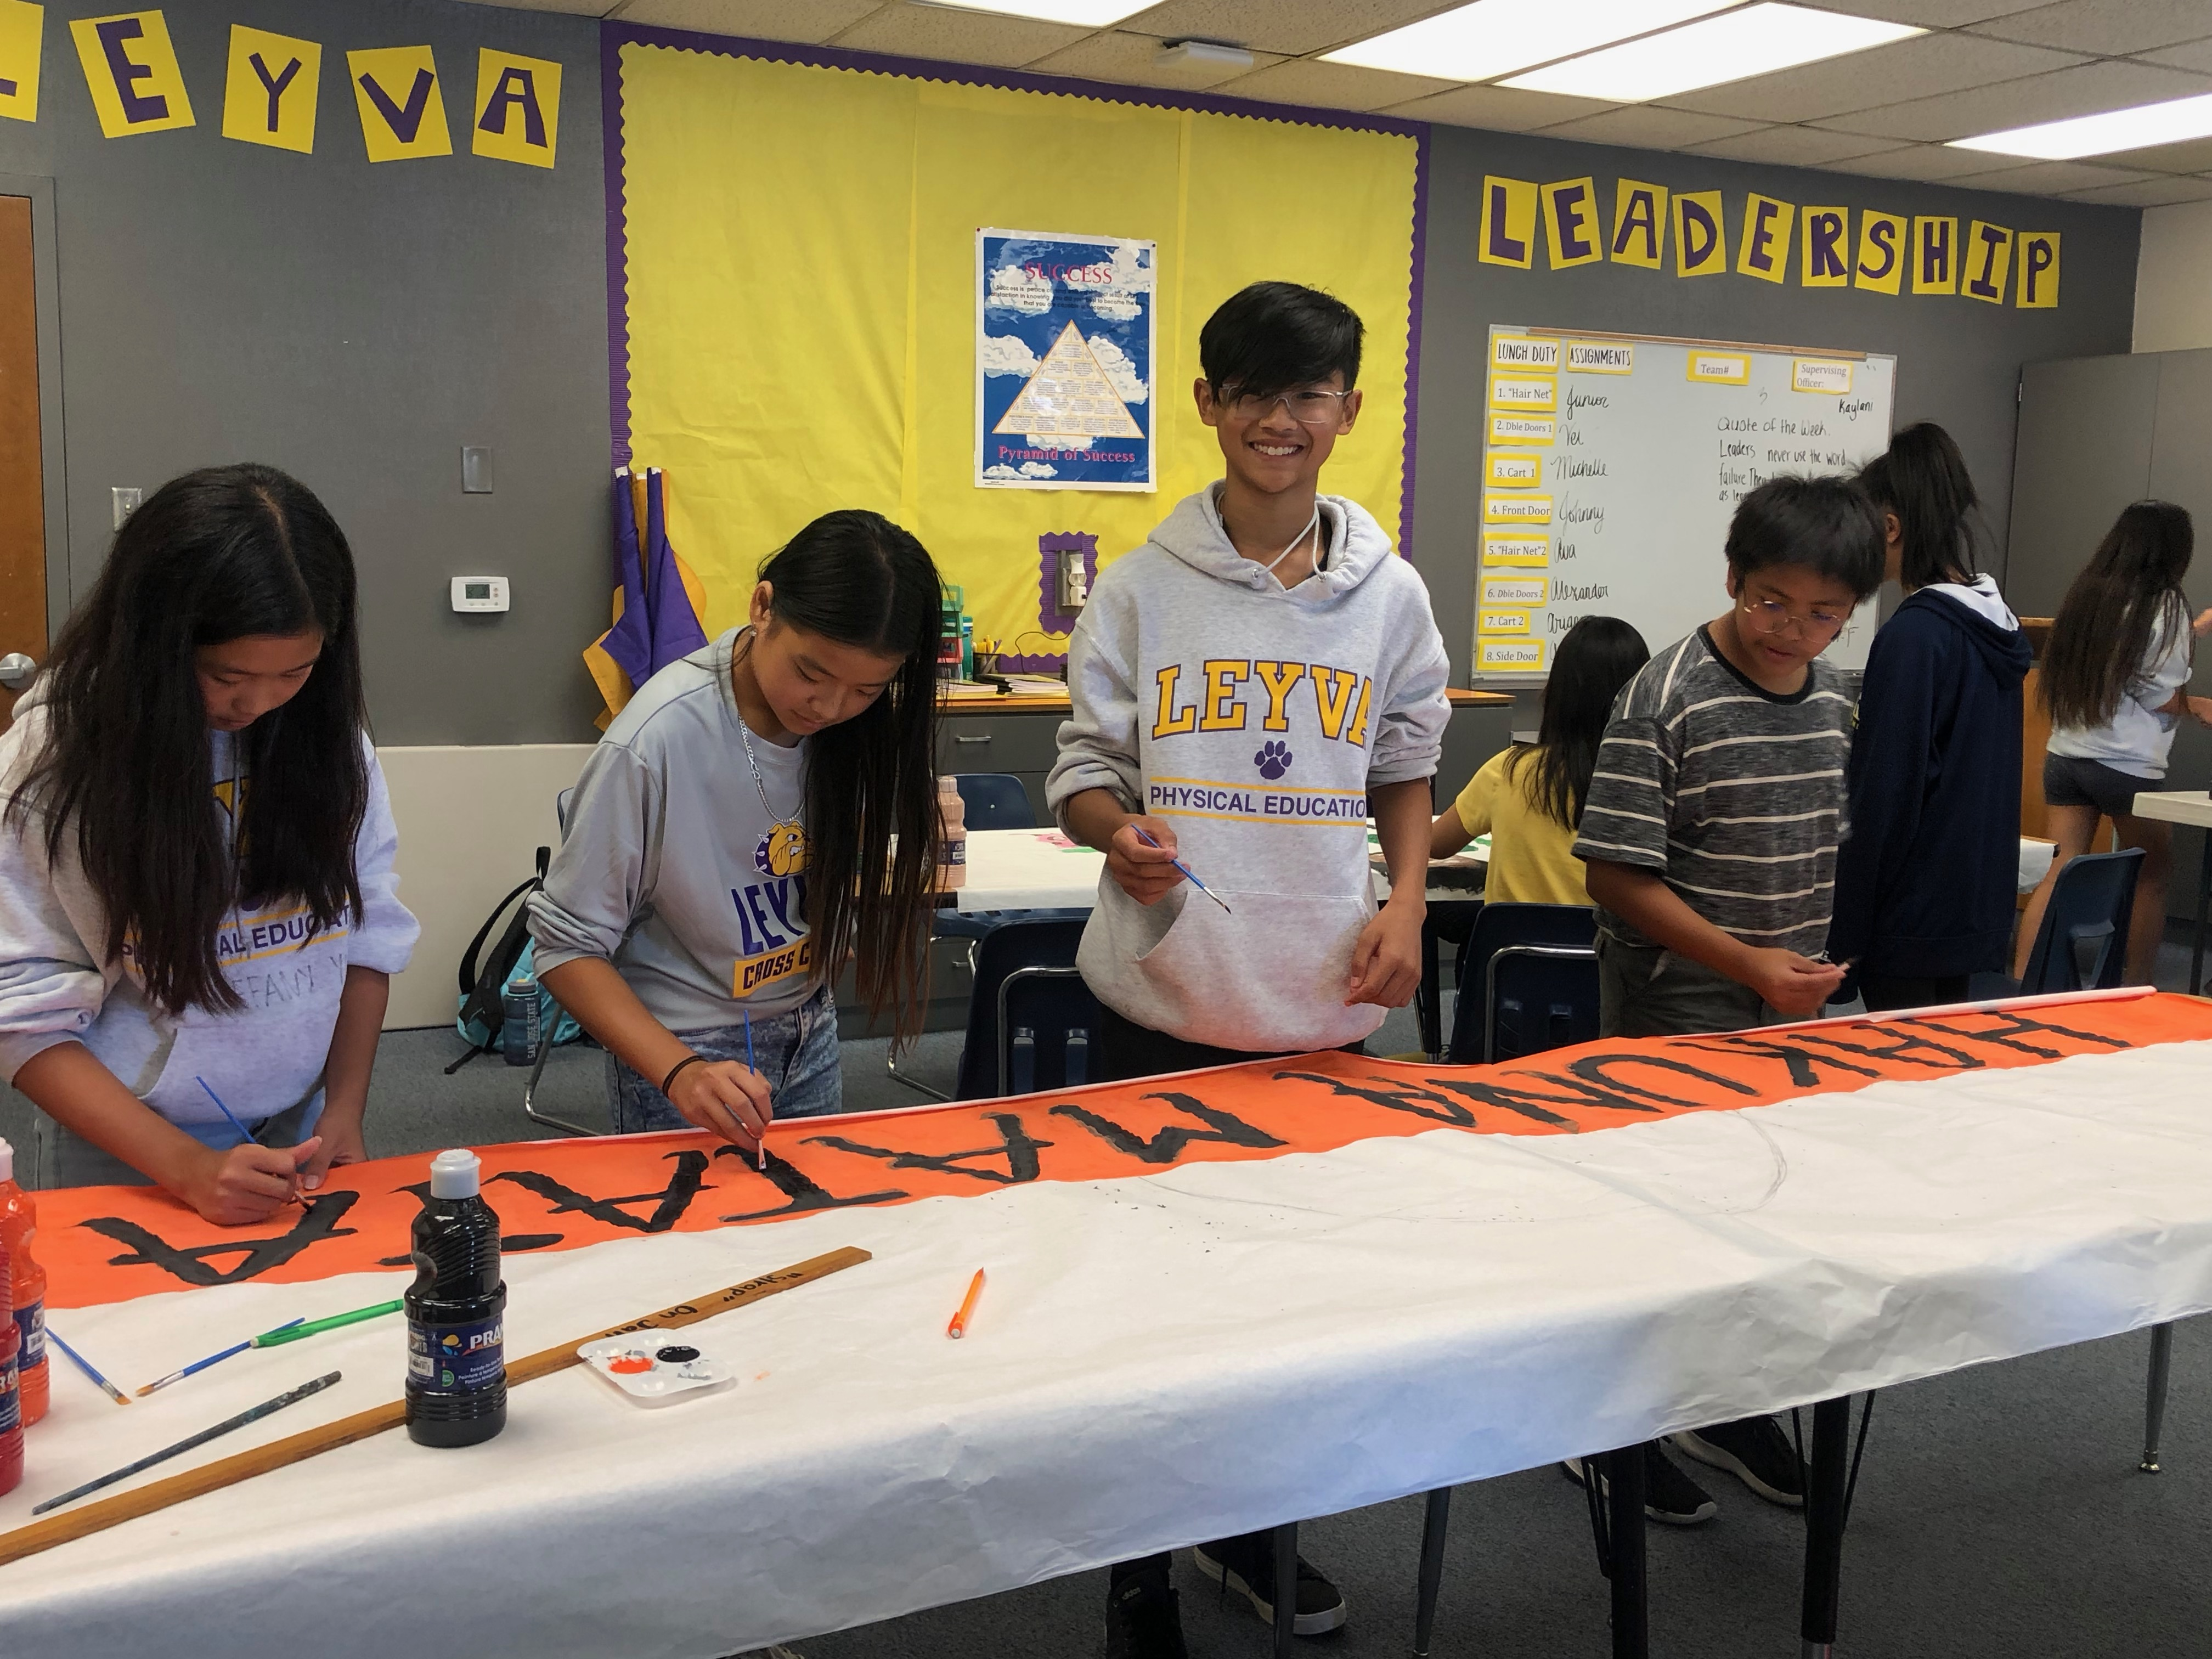 students paining a poster